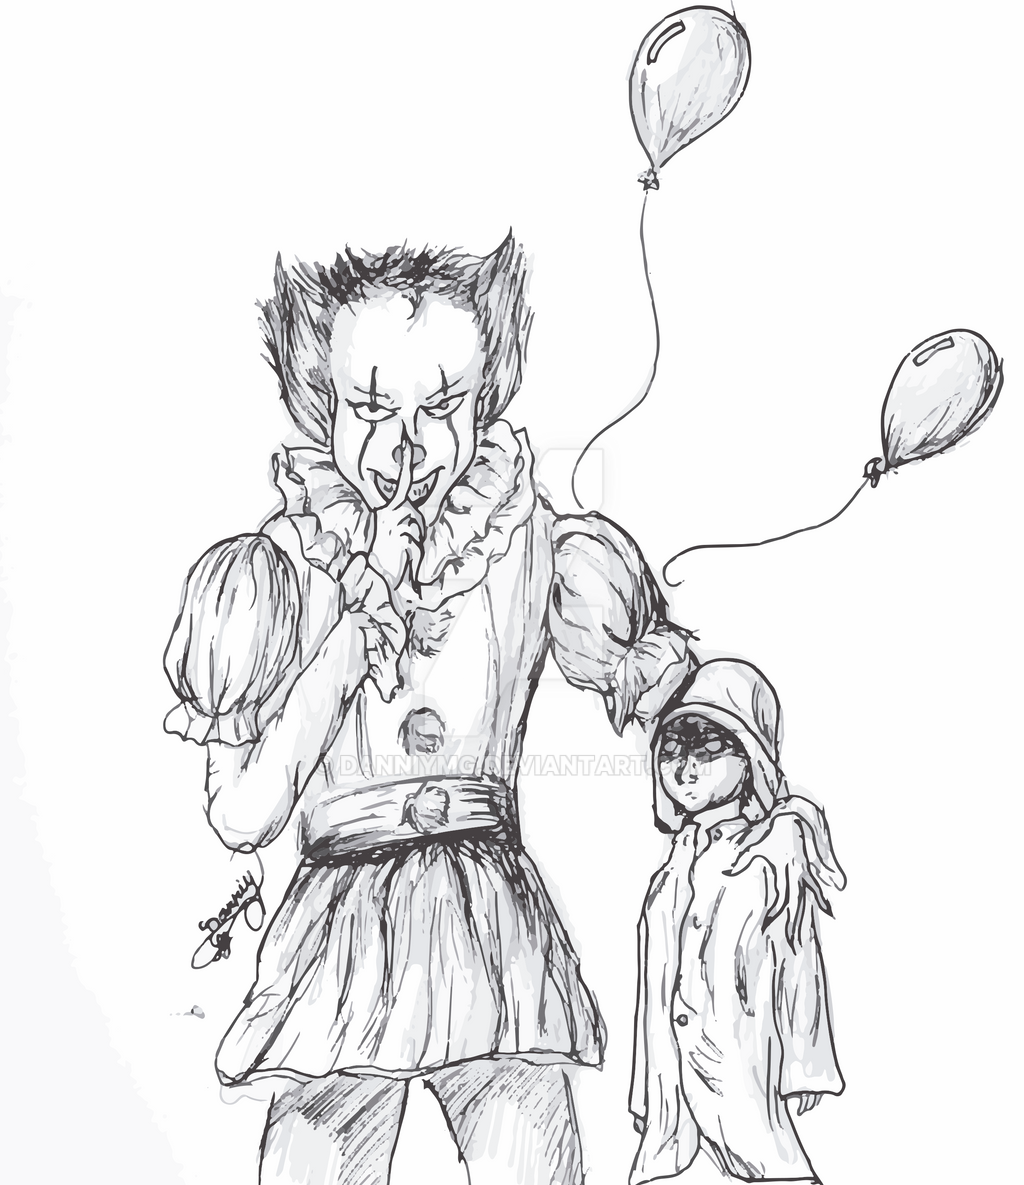 pennywise the clown coloring pages - pennywise dibujo by danniymg on deviantart